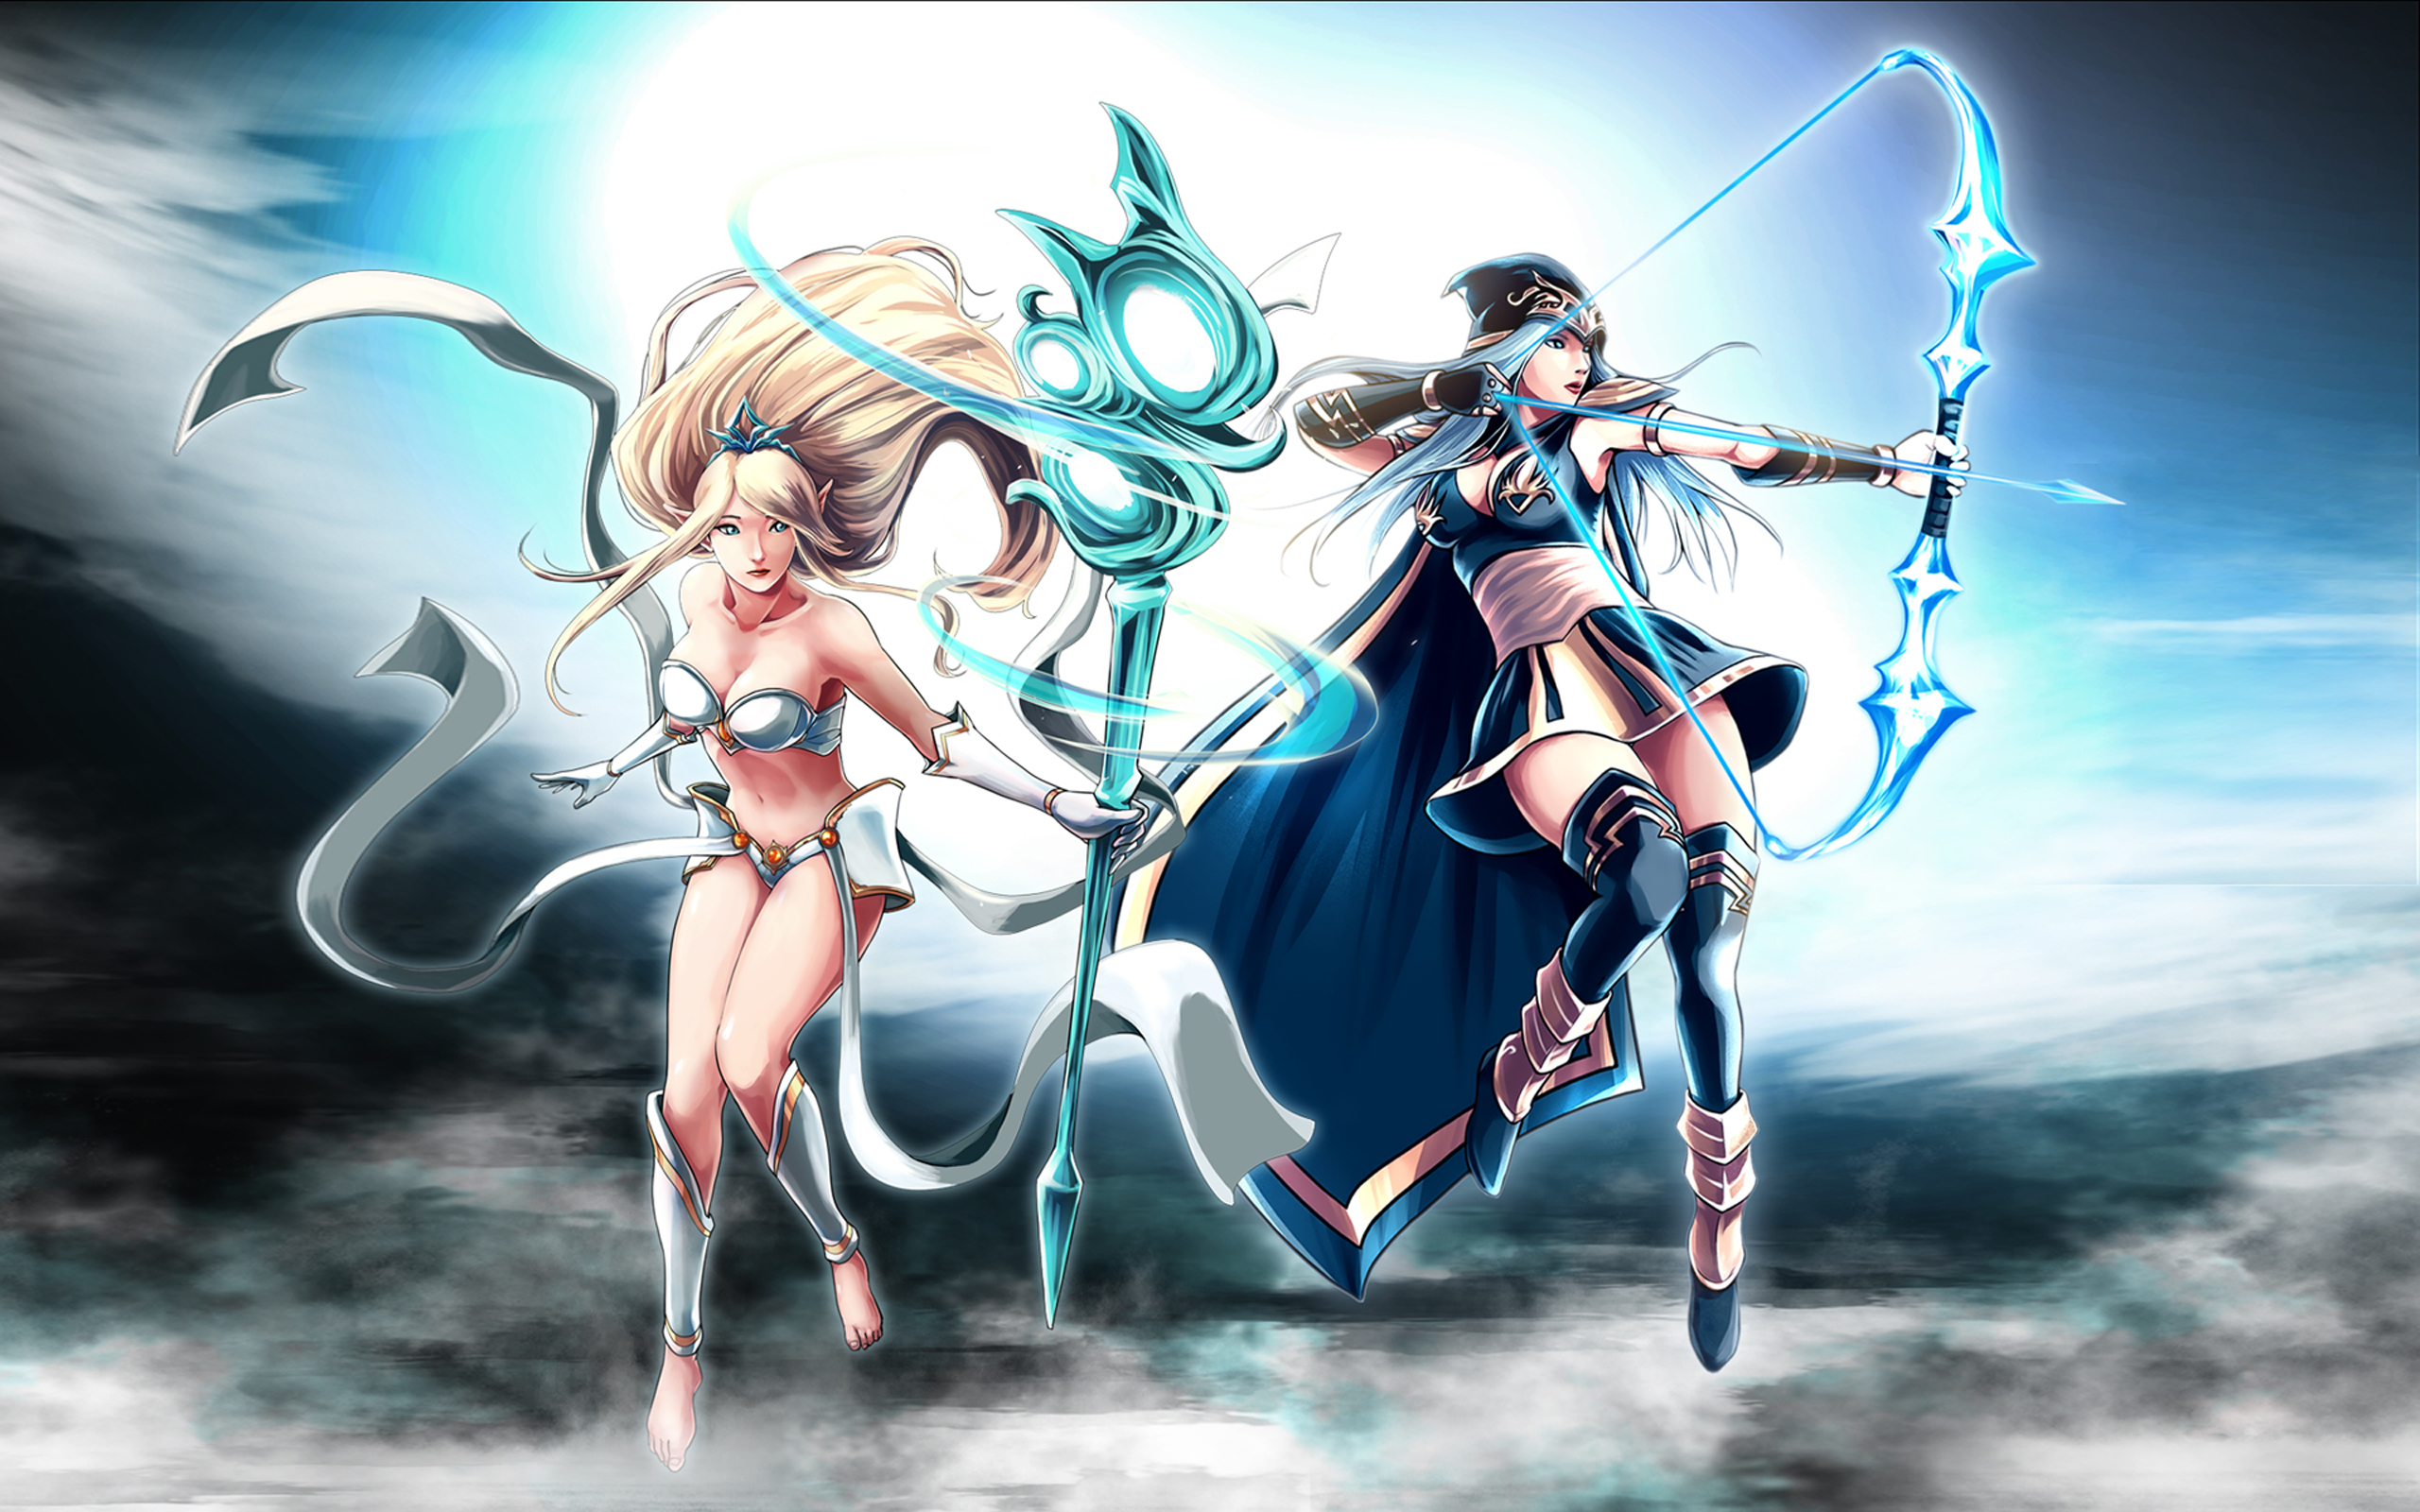 Warrior Girl Wallpaper Hd Ashe Amp Janna League Of Legends Champion Fan Art Hd